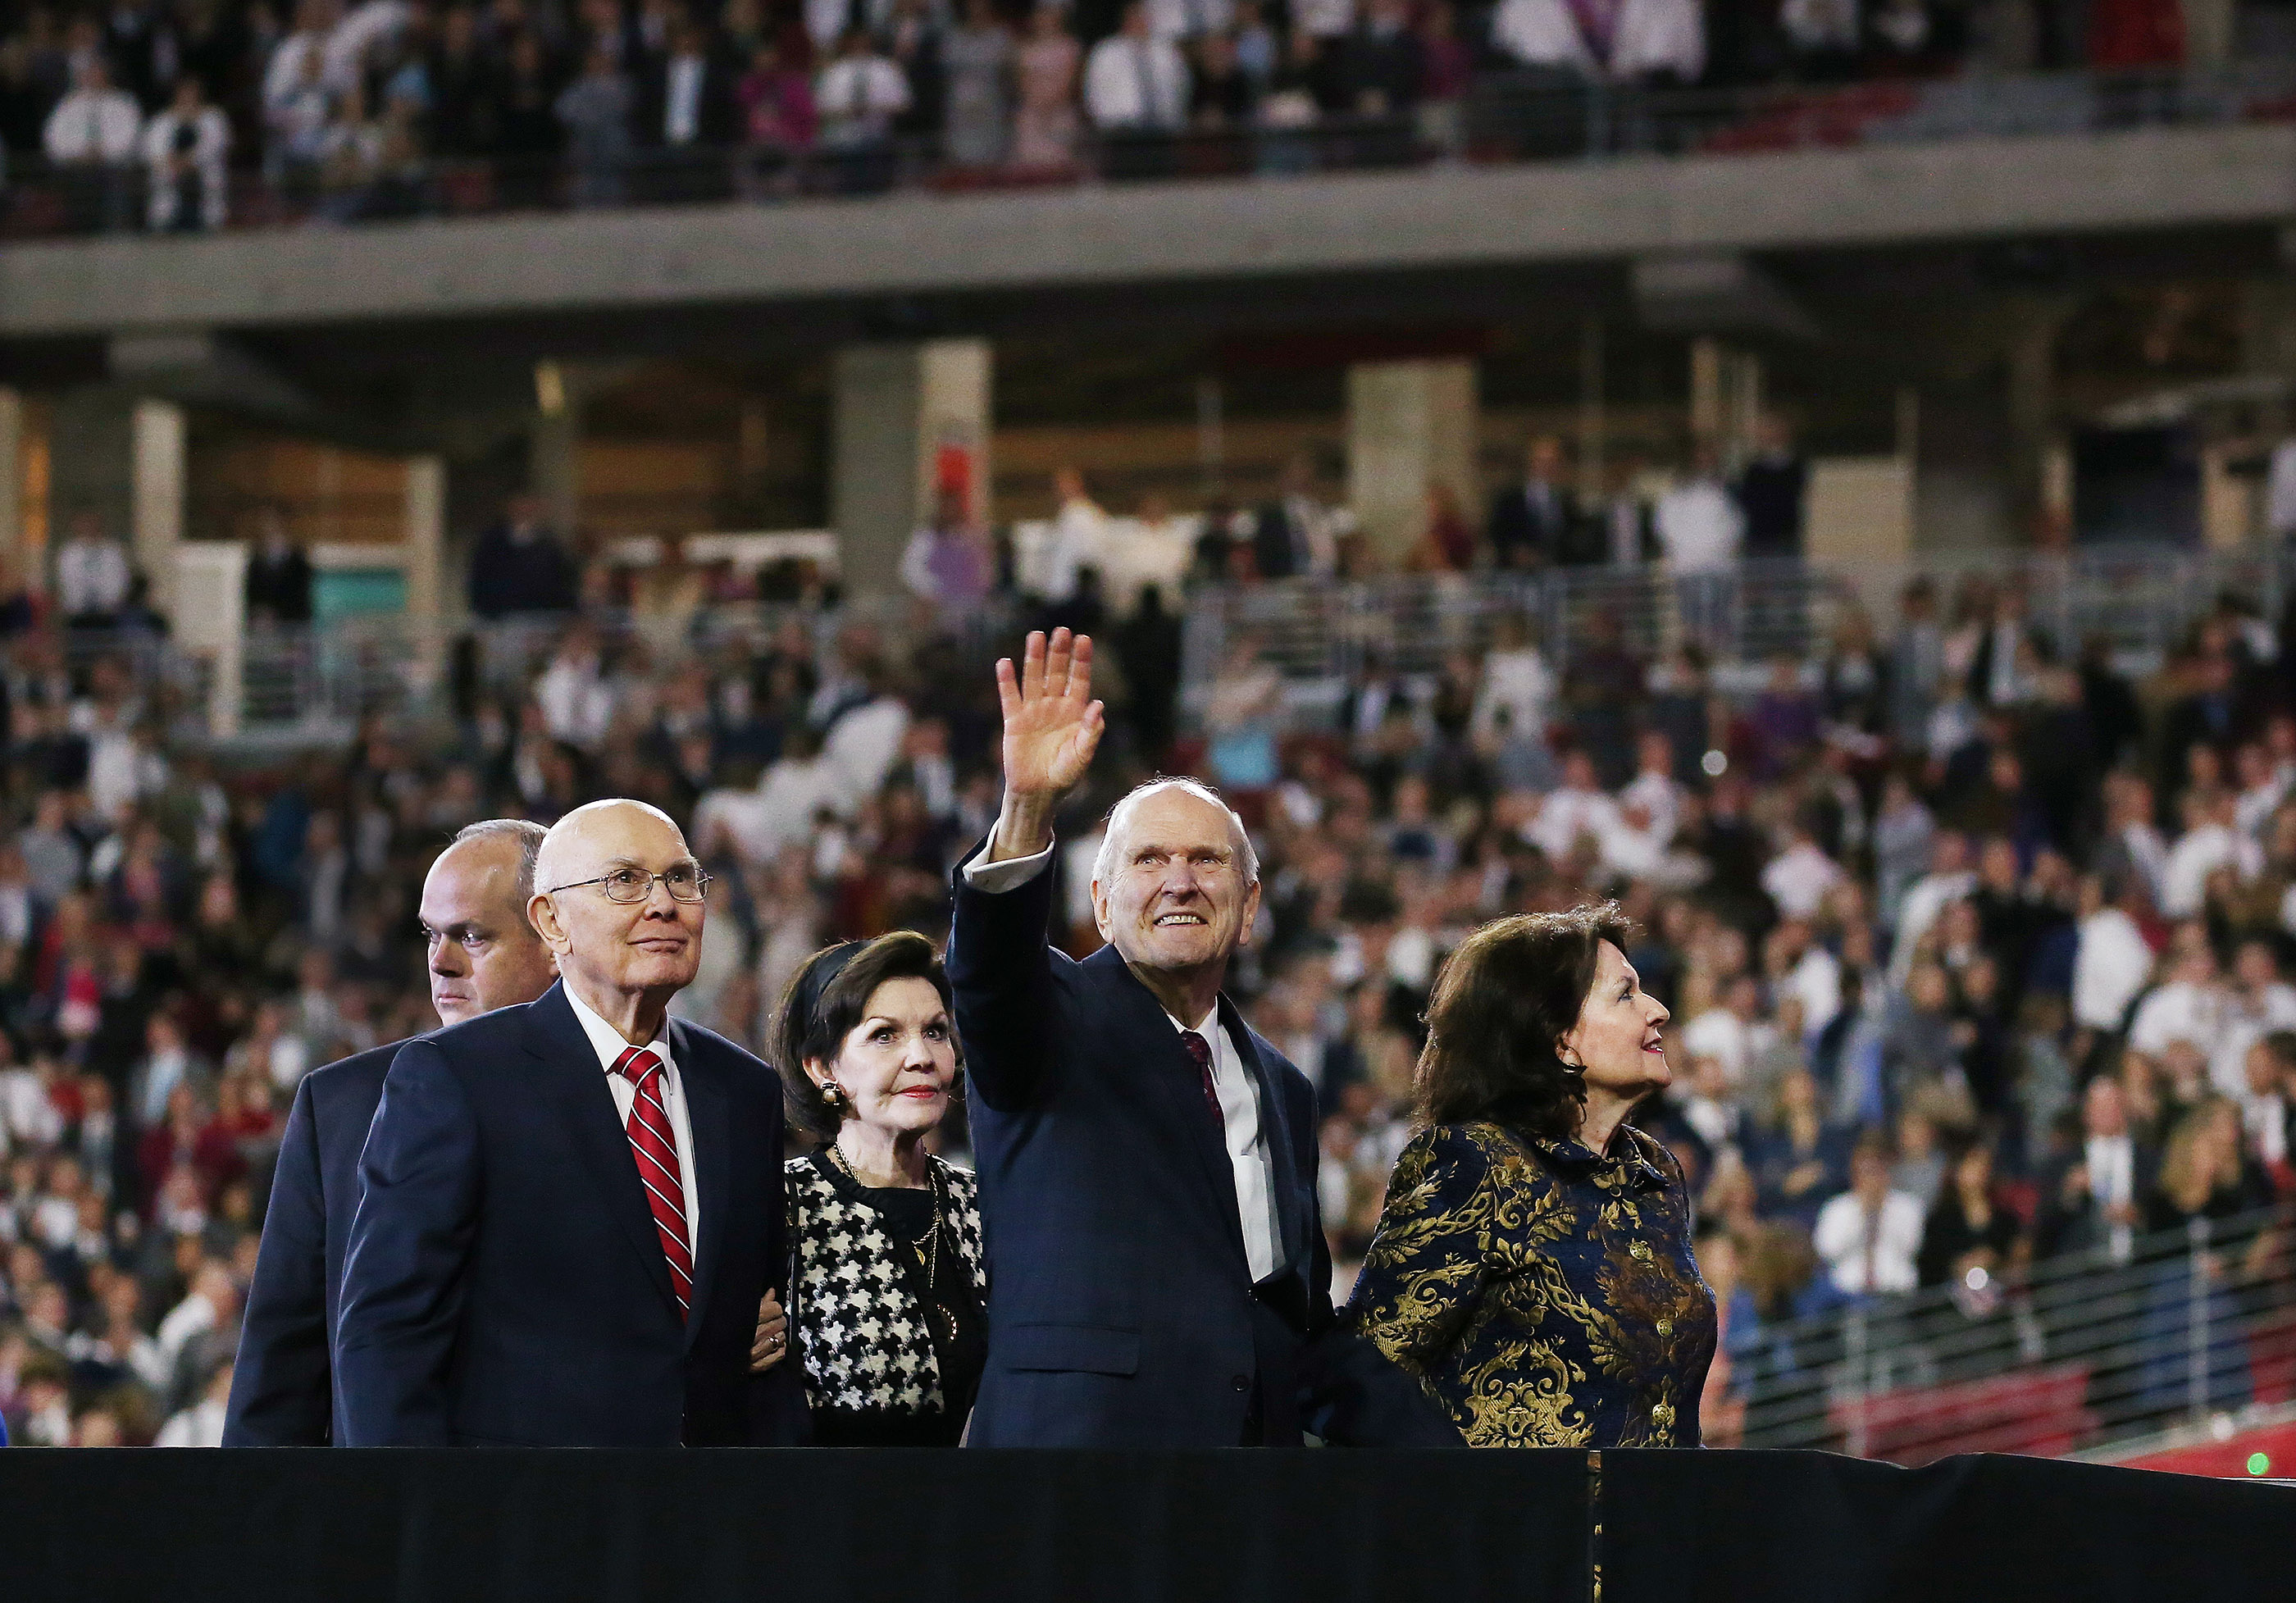 President Russell M. Nelson of The Church of Jesus Christ of Latter-day Saints waves to attendees after speaking at the State Farm Stadium in Phoenix on Sunday, Feb. 10, 2019. President Nelson is accompanied by his wife, Sister Wendy Nelson; President Dallin H. Oaks, first counselor in the Church's First Presidency; and his wife, Sister Kristen Oaks.